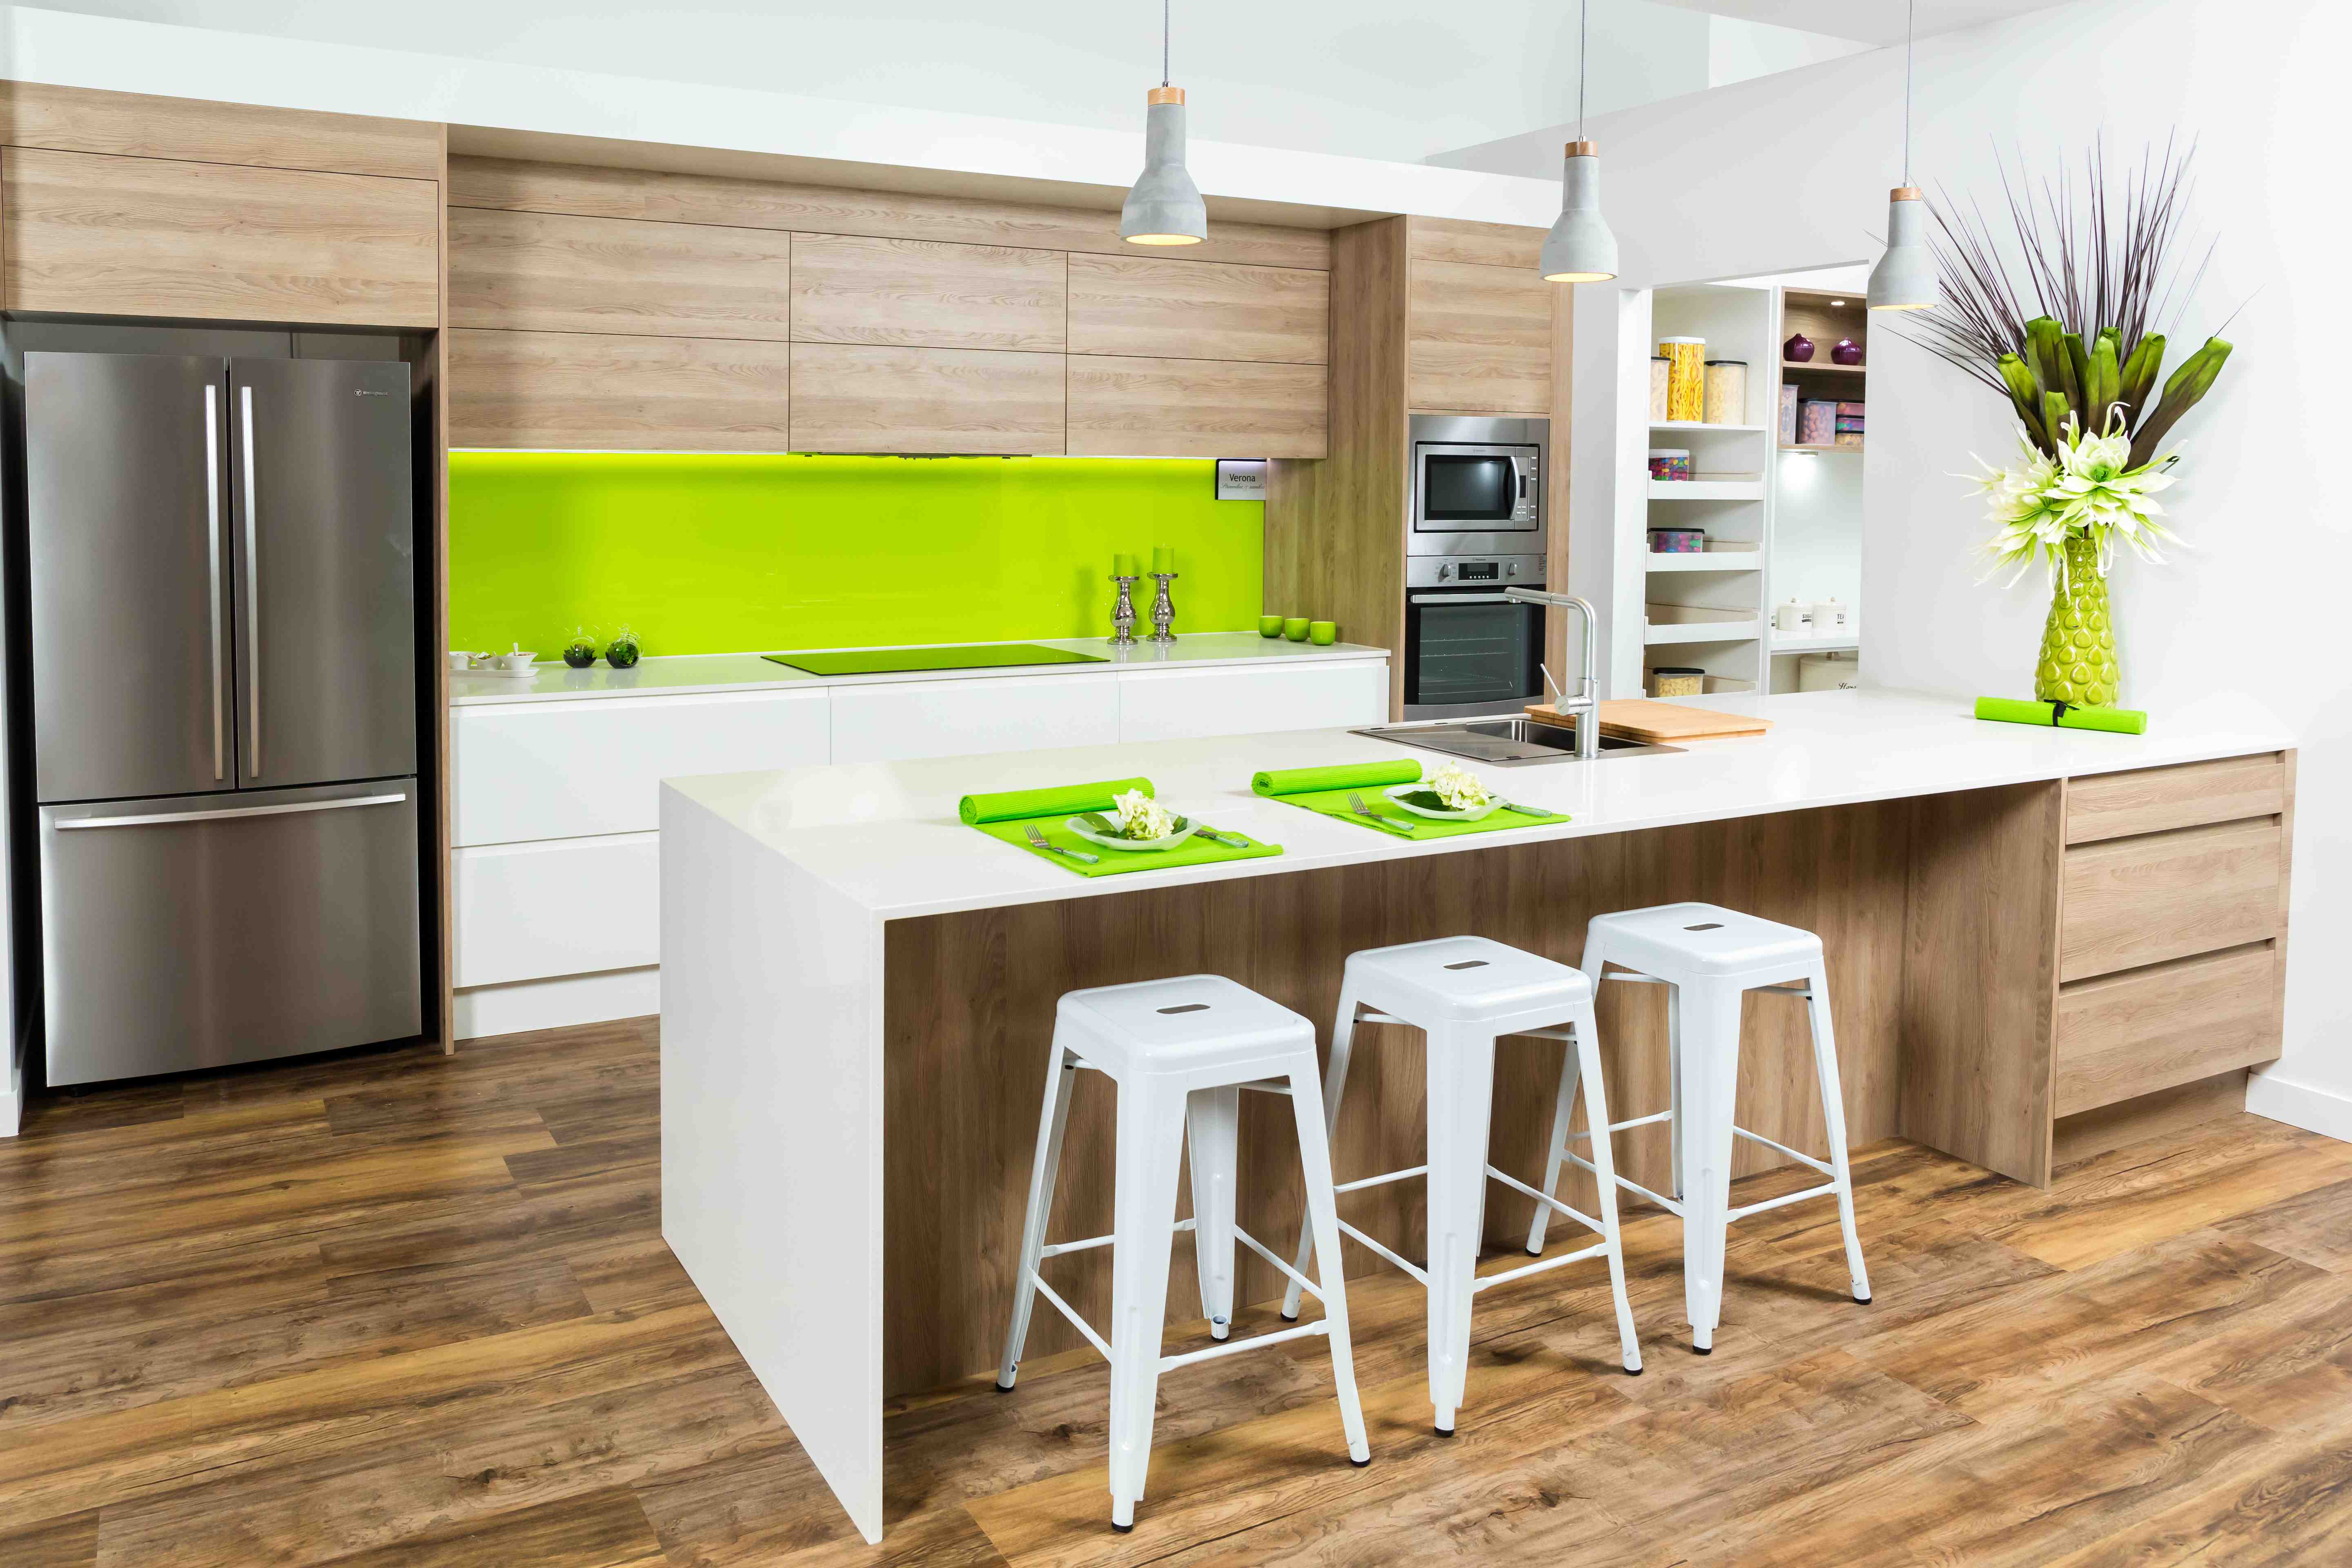 Pros and cons of a kitchen sink island kitchen connection for A kitchen connection